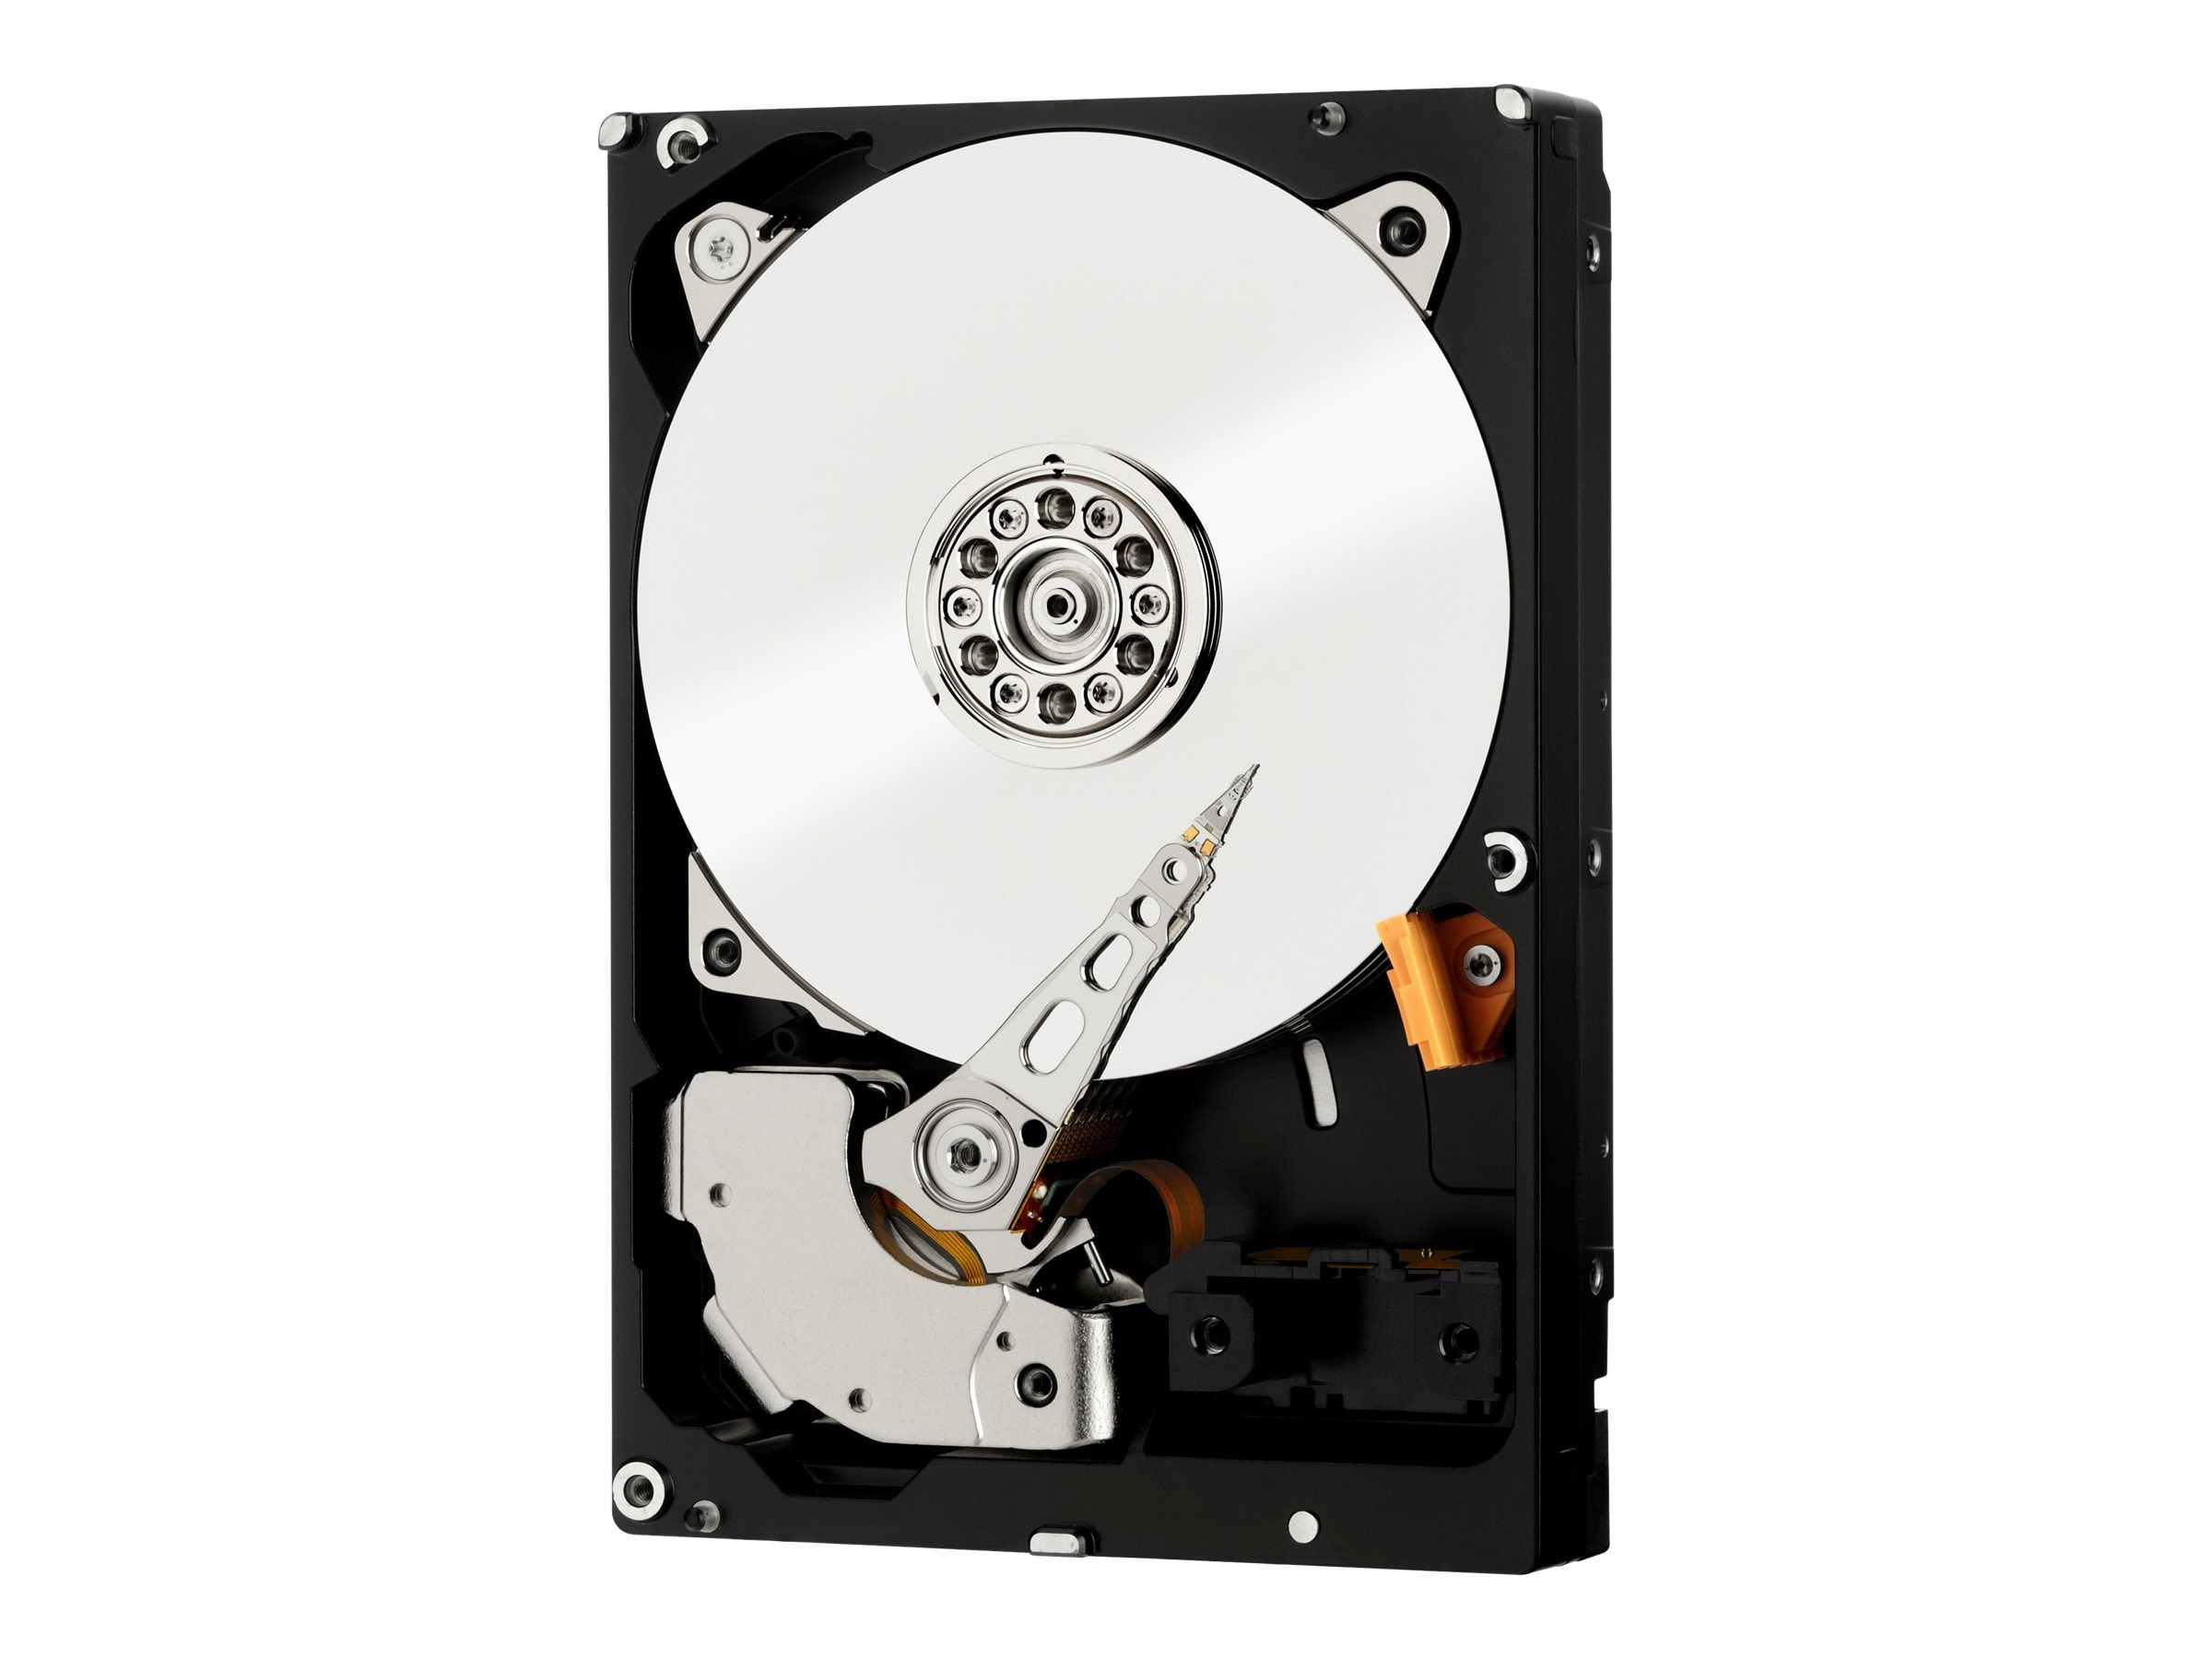 WD 250GB WD RE SATA 6Gb s 3.5 Internal Hard Drive - 64MB Cache, WD2503ABYZ, 15775247, Hard Drives - Internal